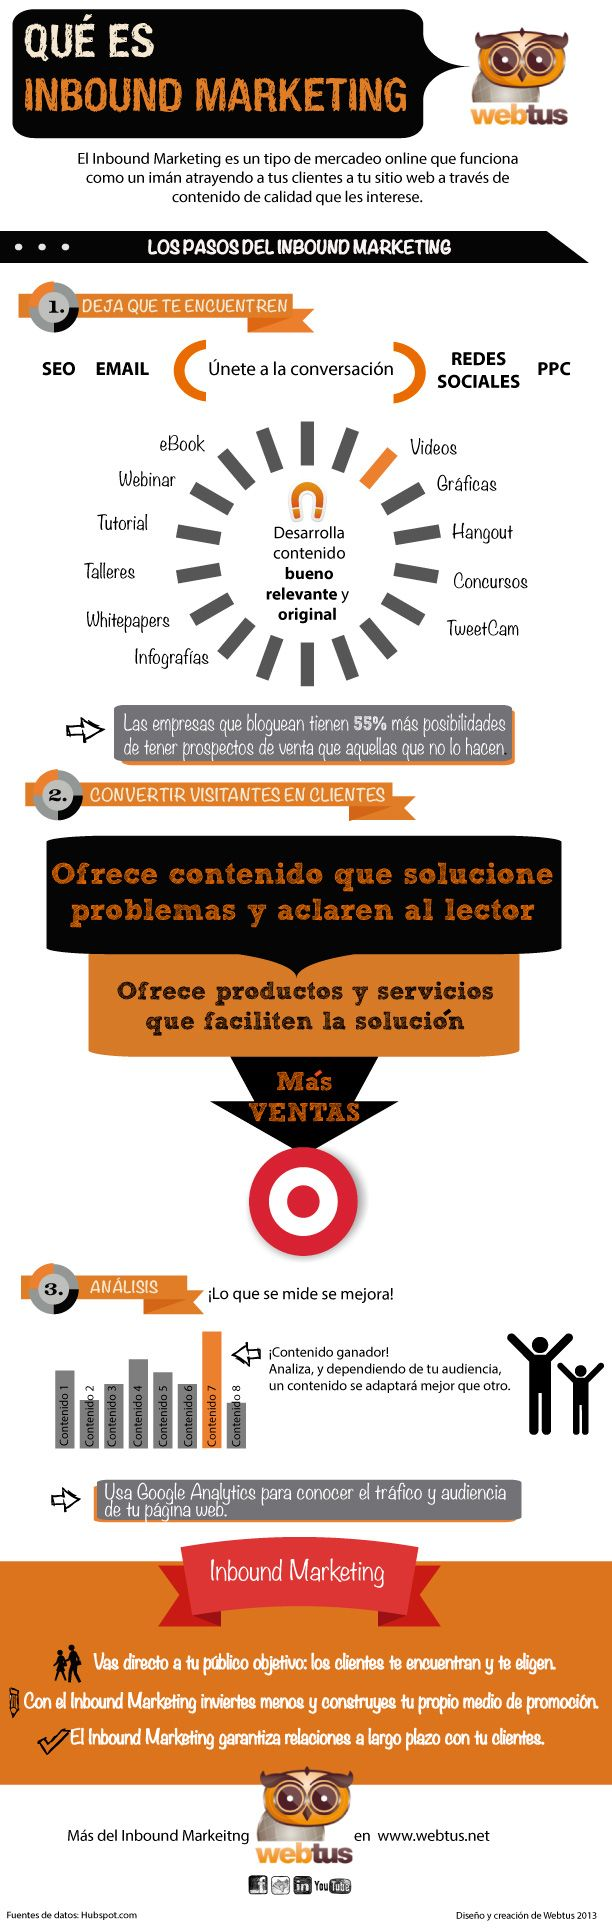 Qué es Inbound Marketing #infografia #infographic #socialmediaa